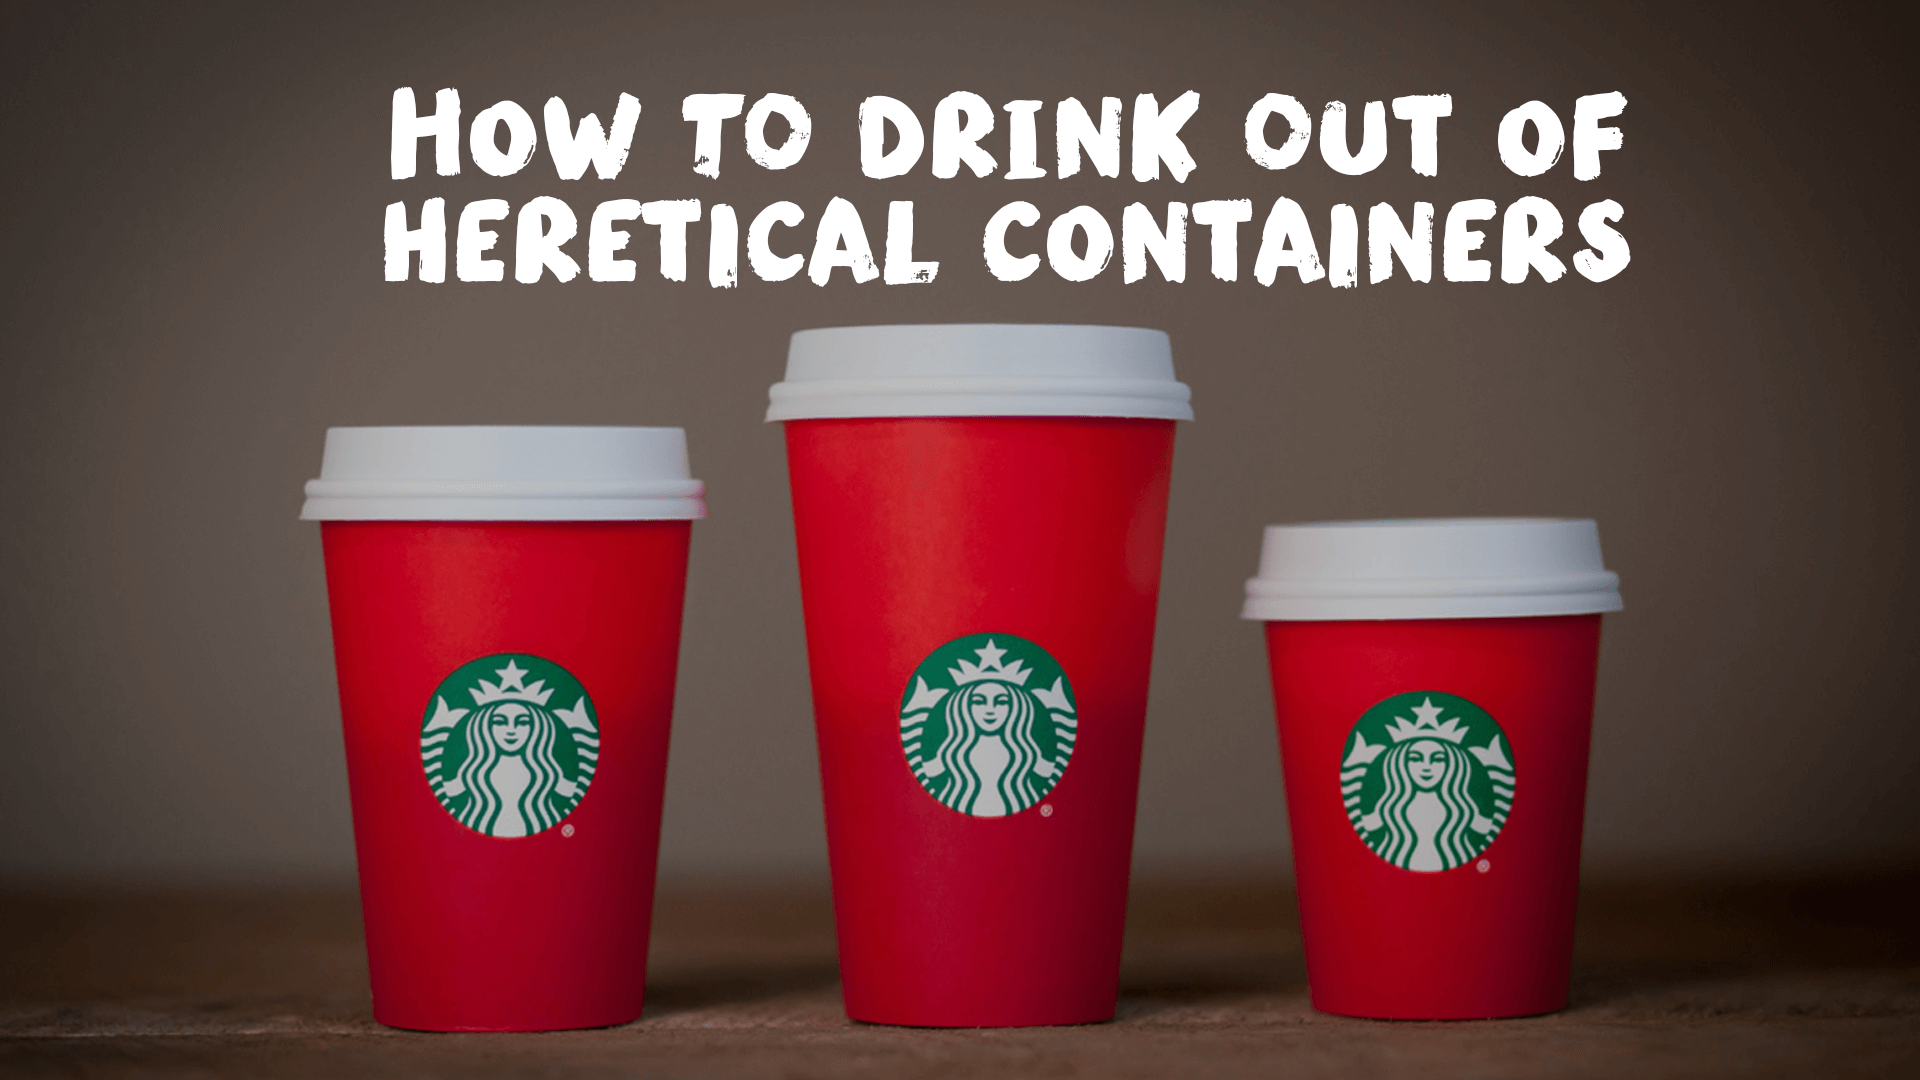 How Christians Can Drink Hot Beverages Out of Heretical Containers